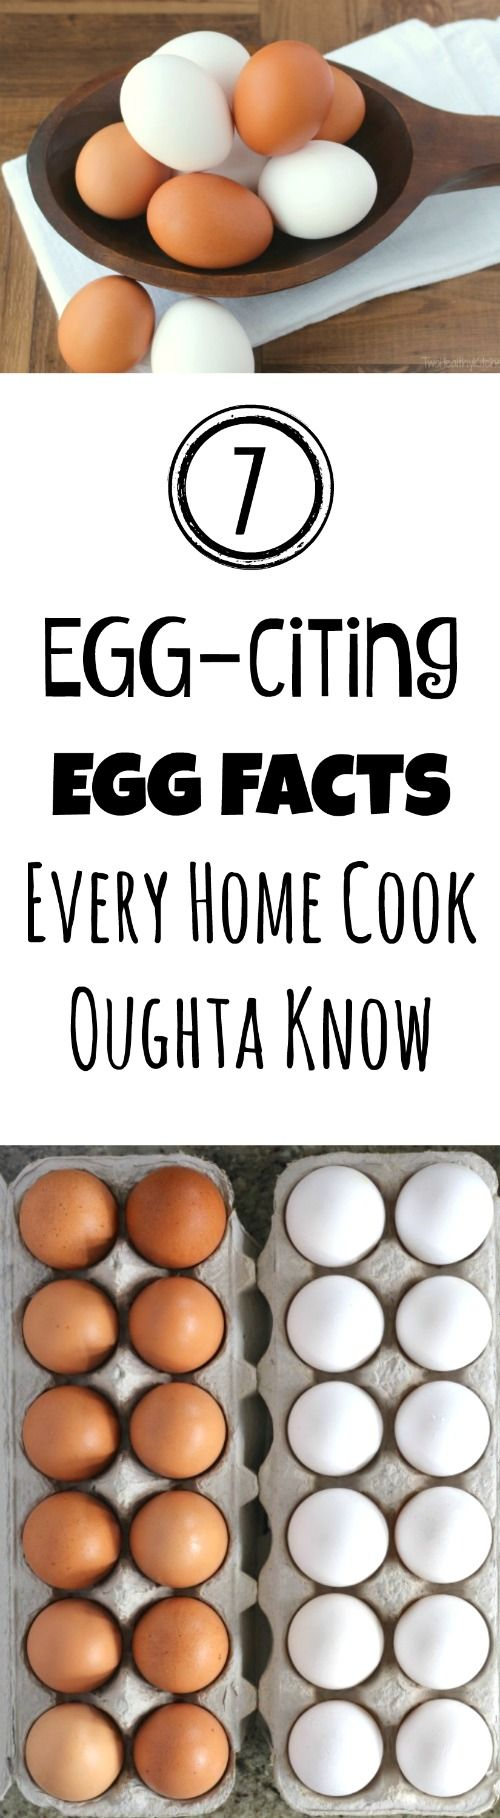 Egg cooking tips, egg nutrition, egg production facts - great info to help you select, purchase and cook eggs. You might be surprised what you don't know!